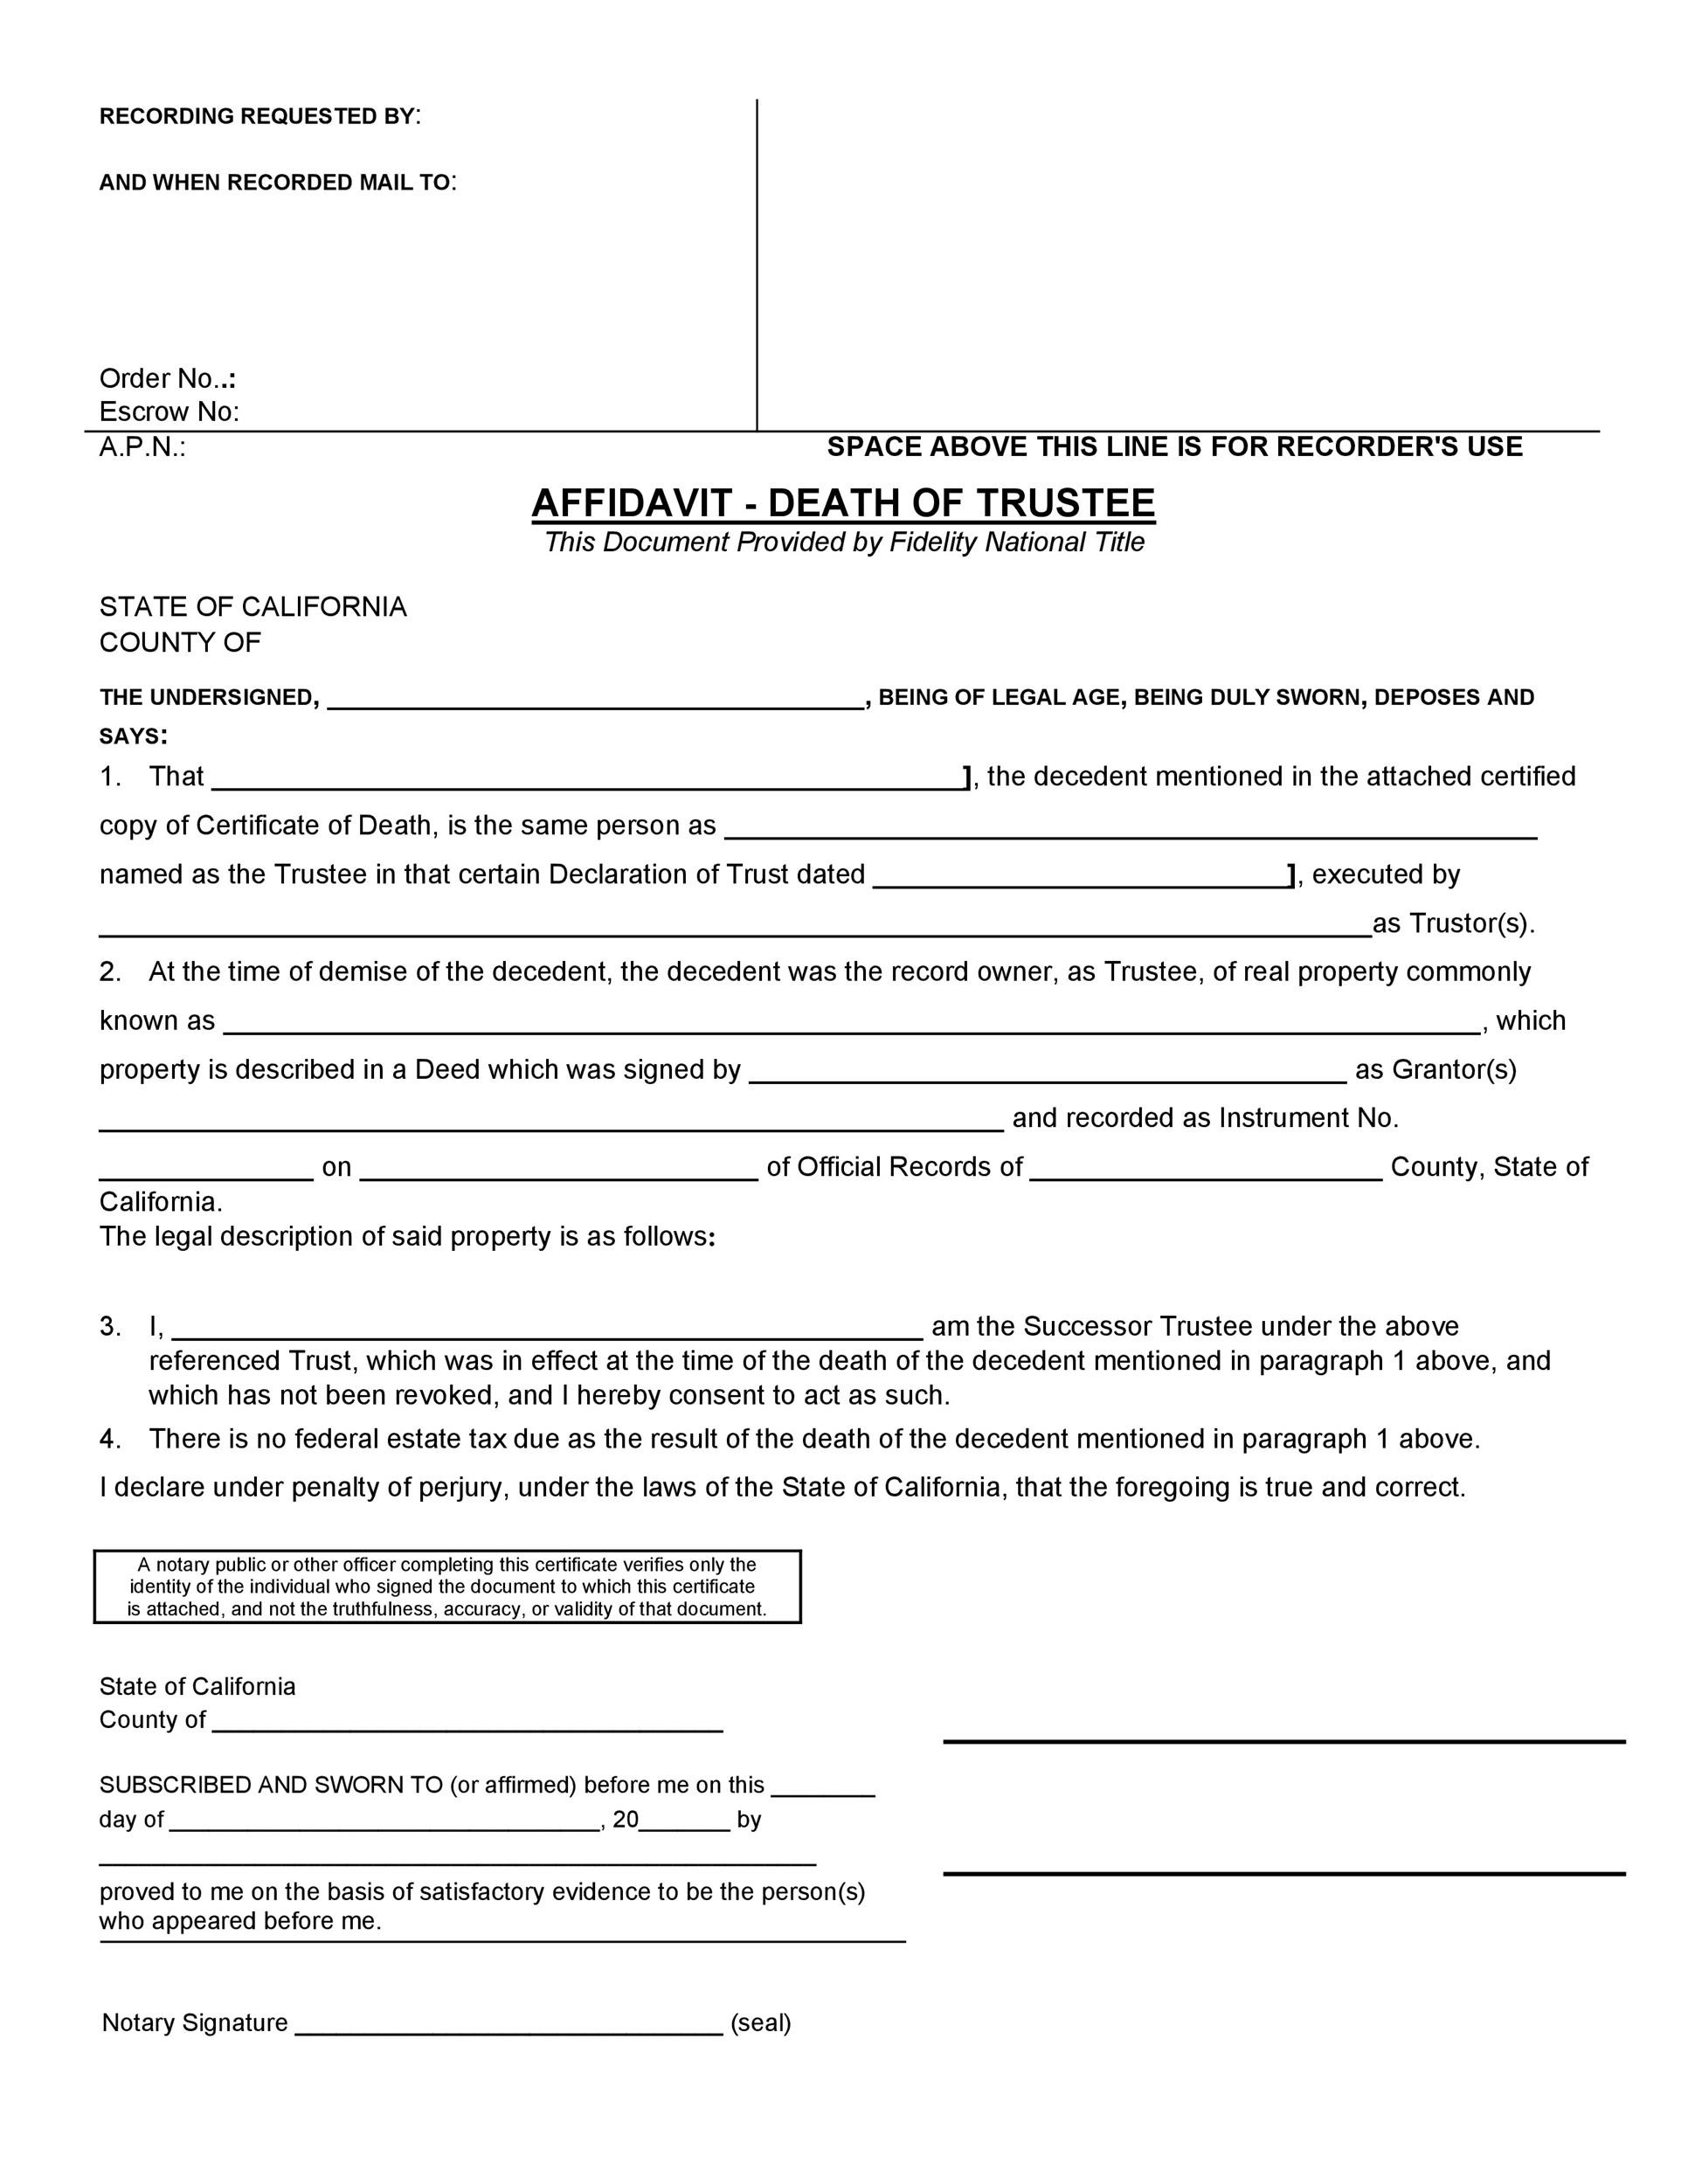 Free affidavit of death 31